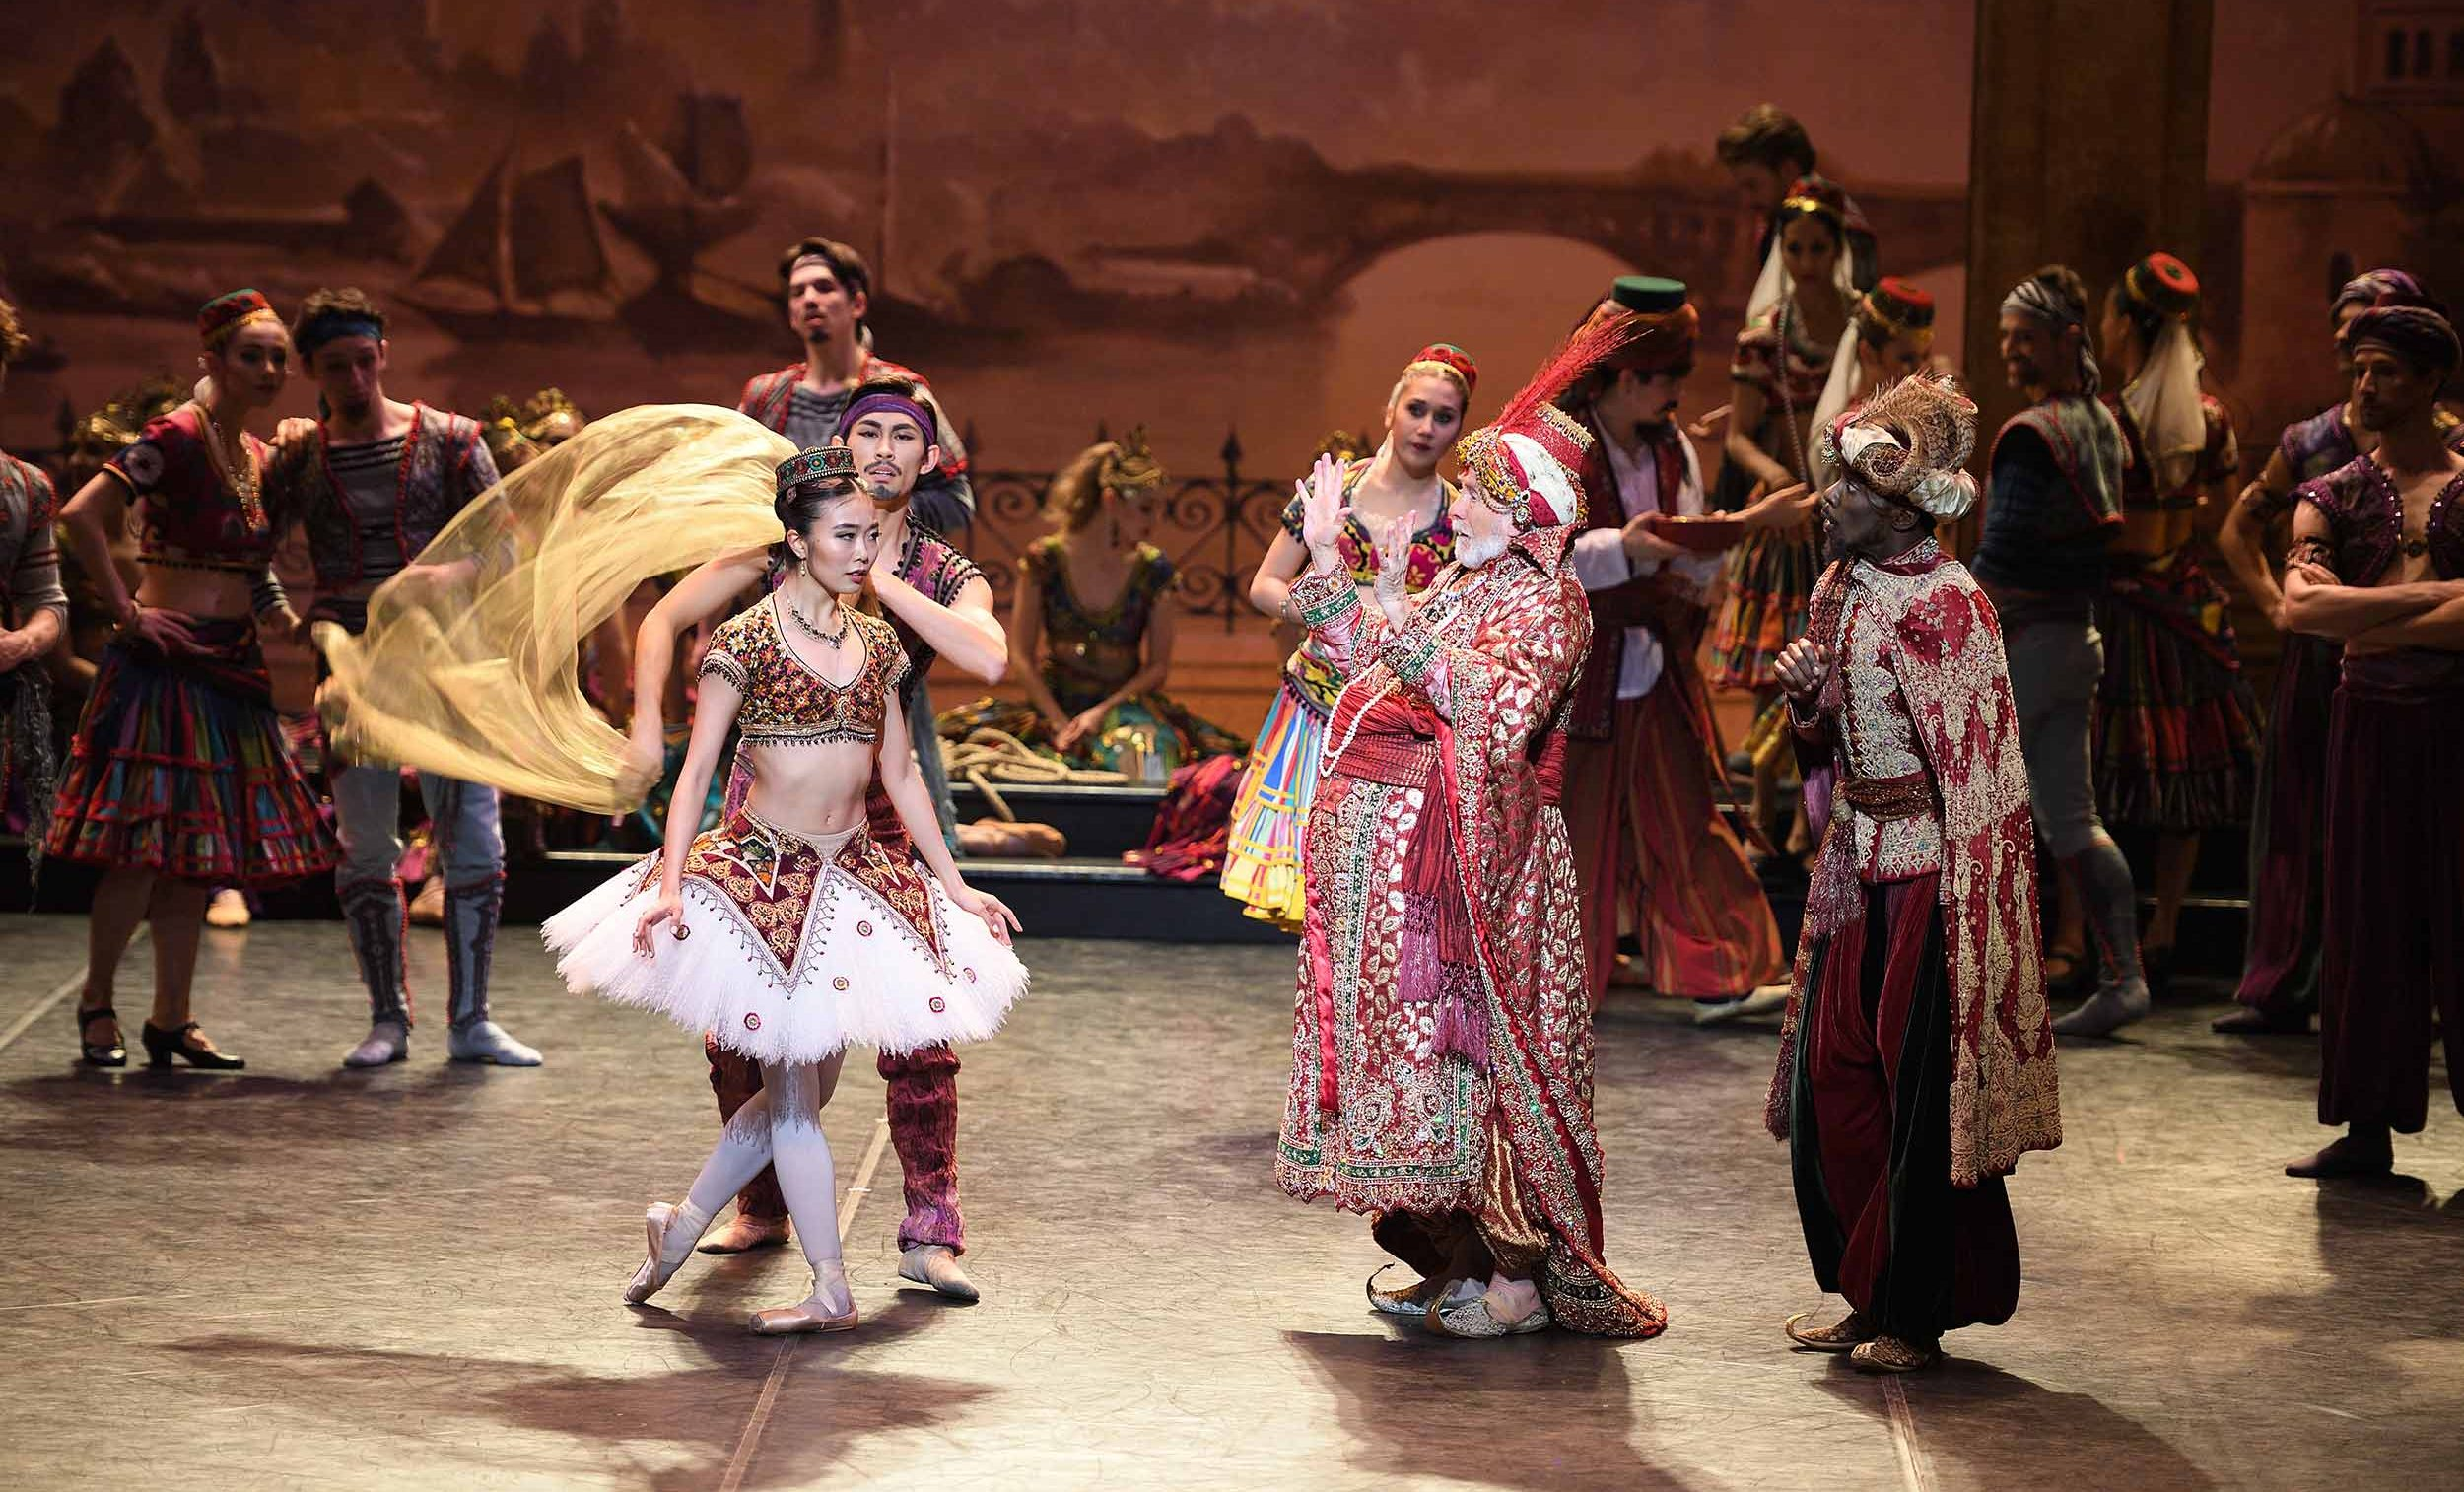 Shiori-Kase-and-Michael-Coleman-in-Le-Corsaire-(c)-Laurent-Liotardo